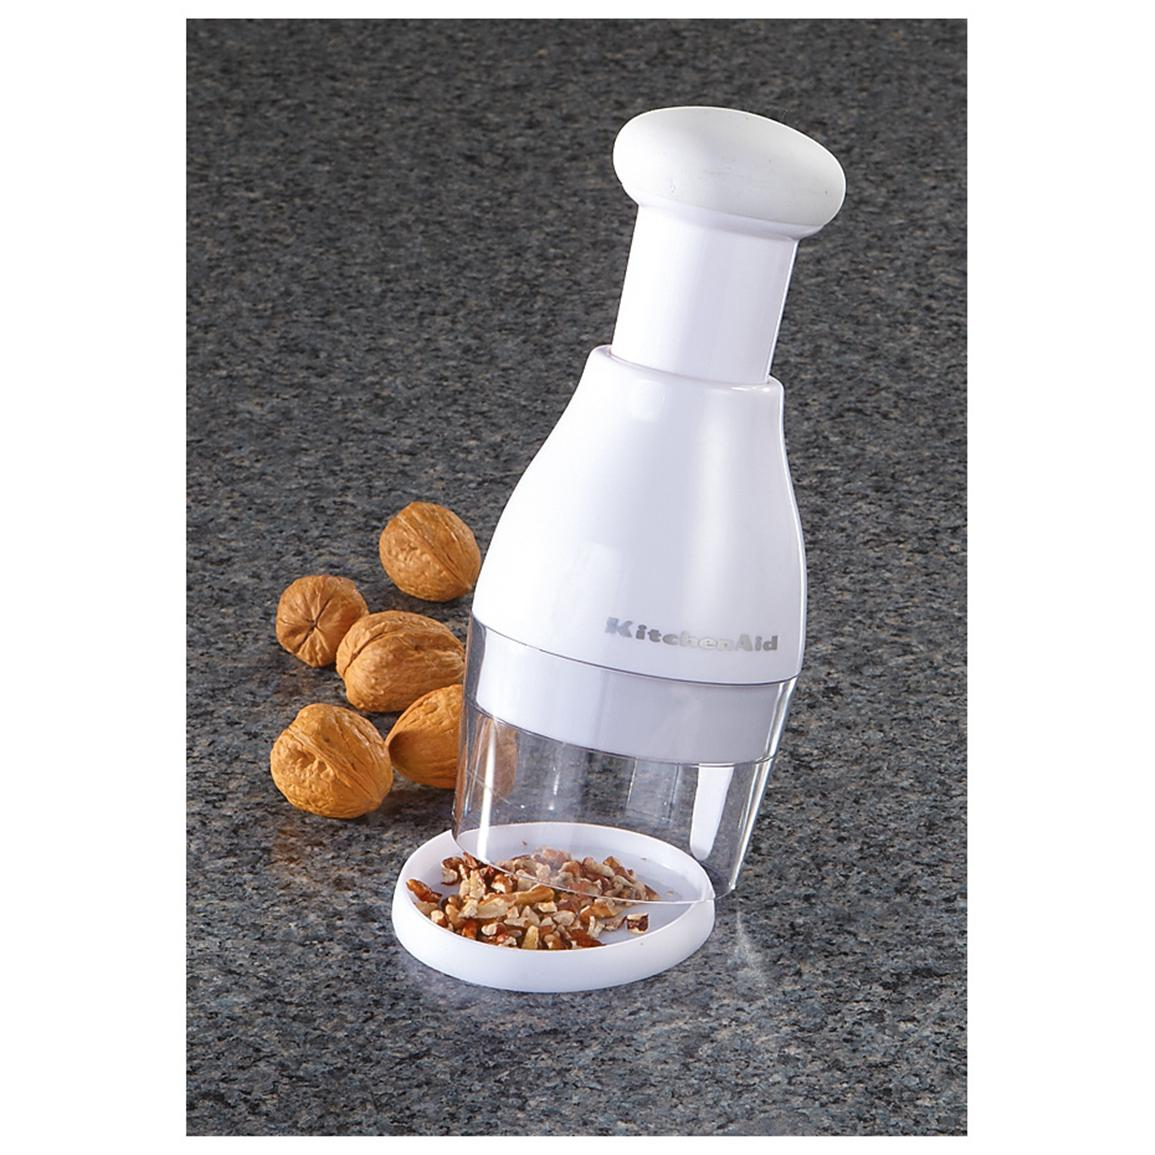 Kitchenaid 174 Pro Food Chopper White 226099 Food Processing Accessories At Sportsman S Guide